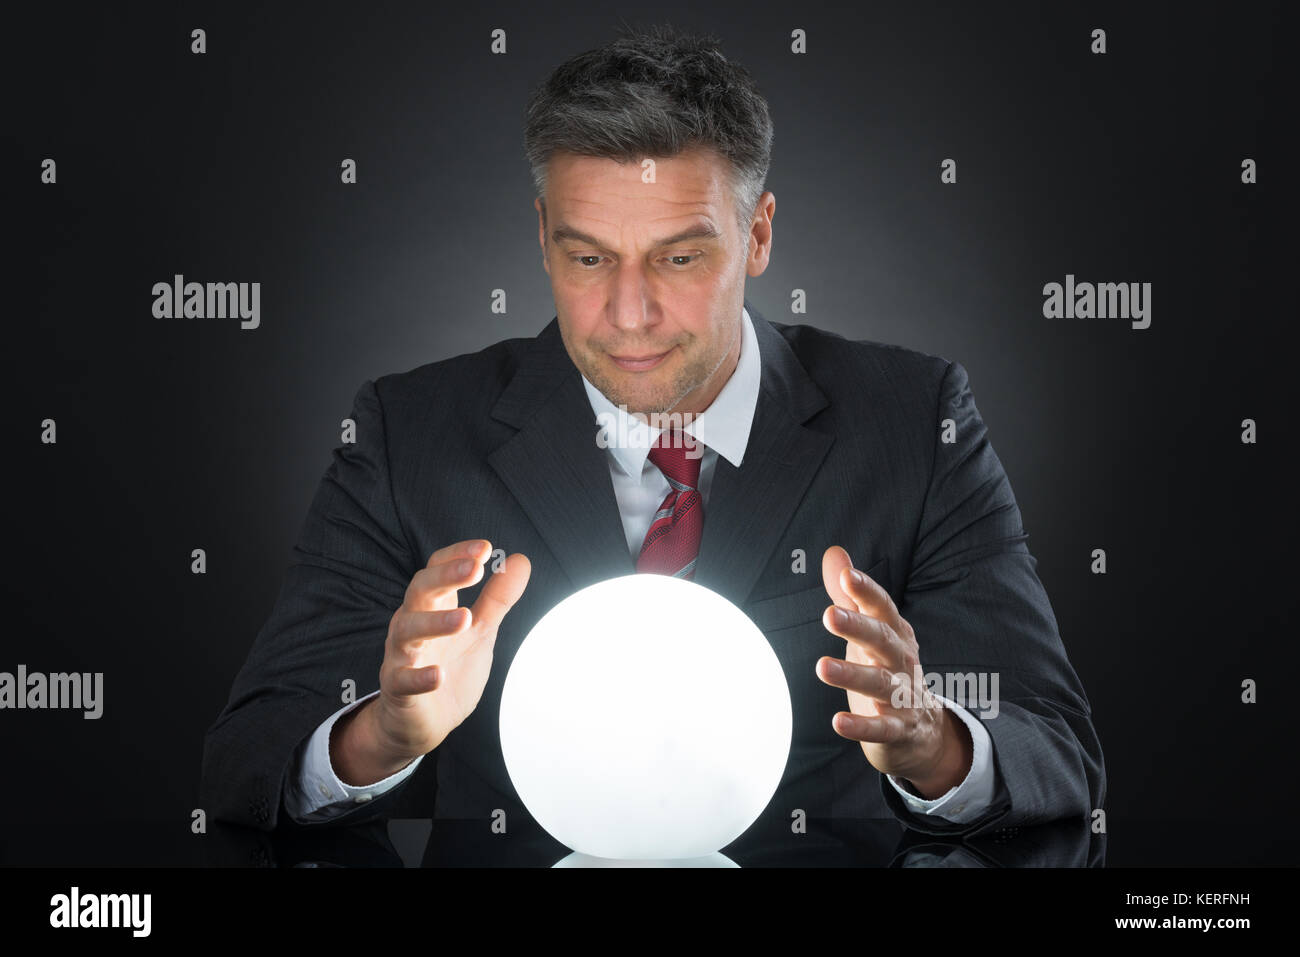 Portrait Of Businessman Predicting Future With Crystal Ball On Desk - Stock Image